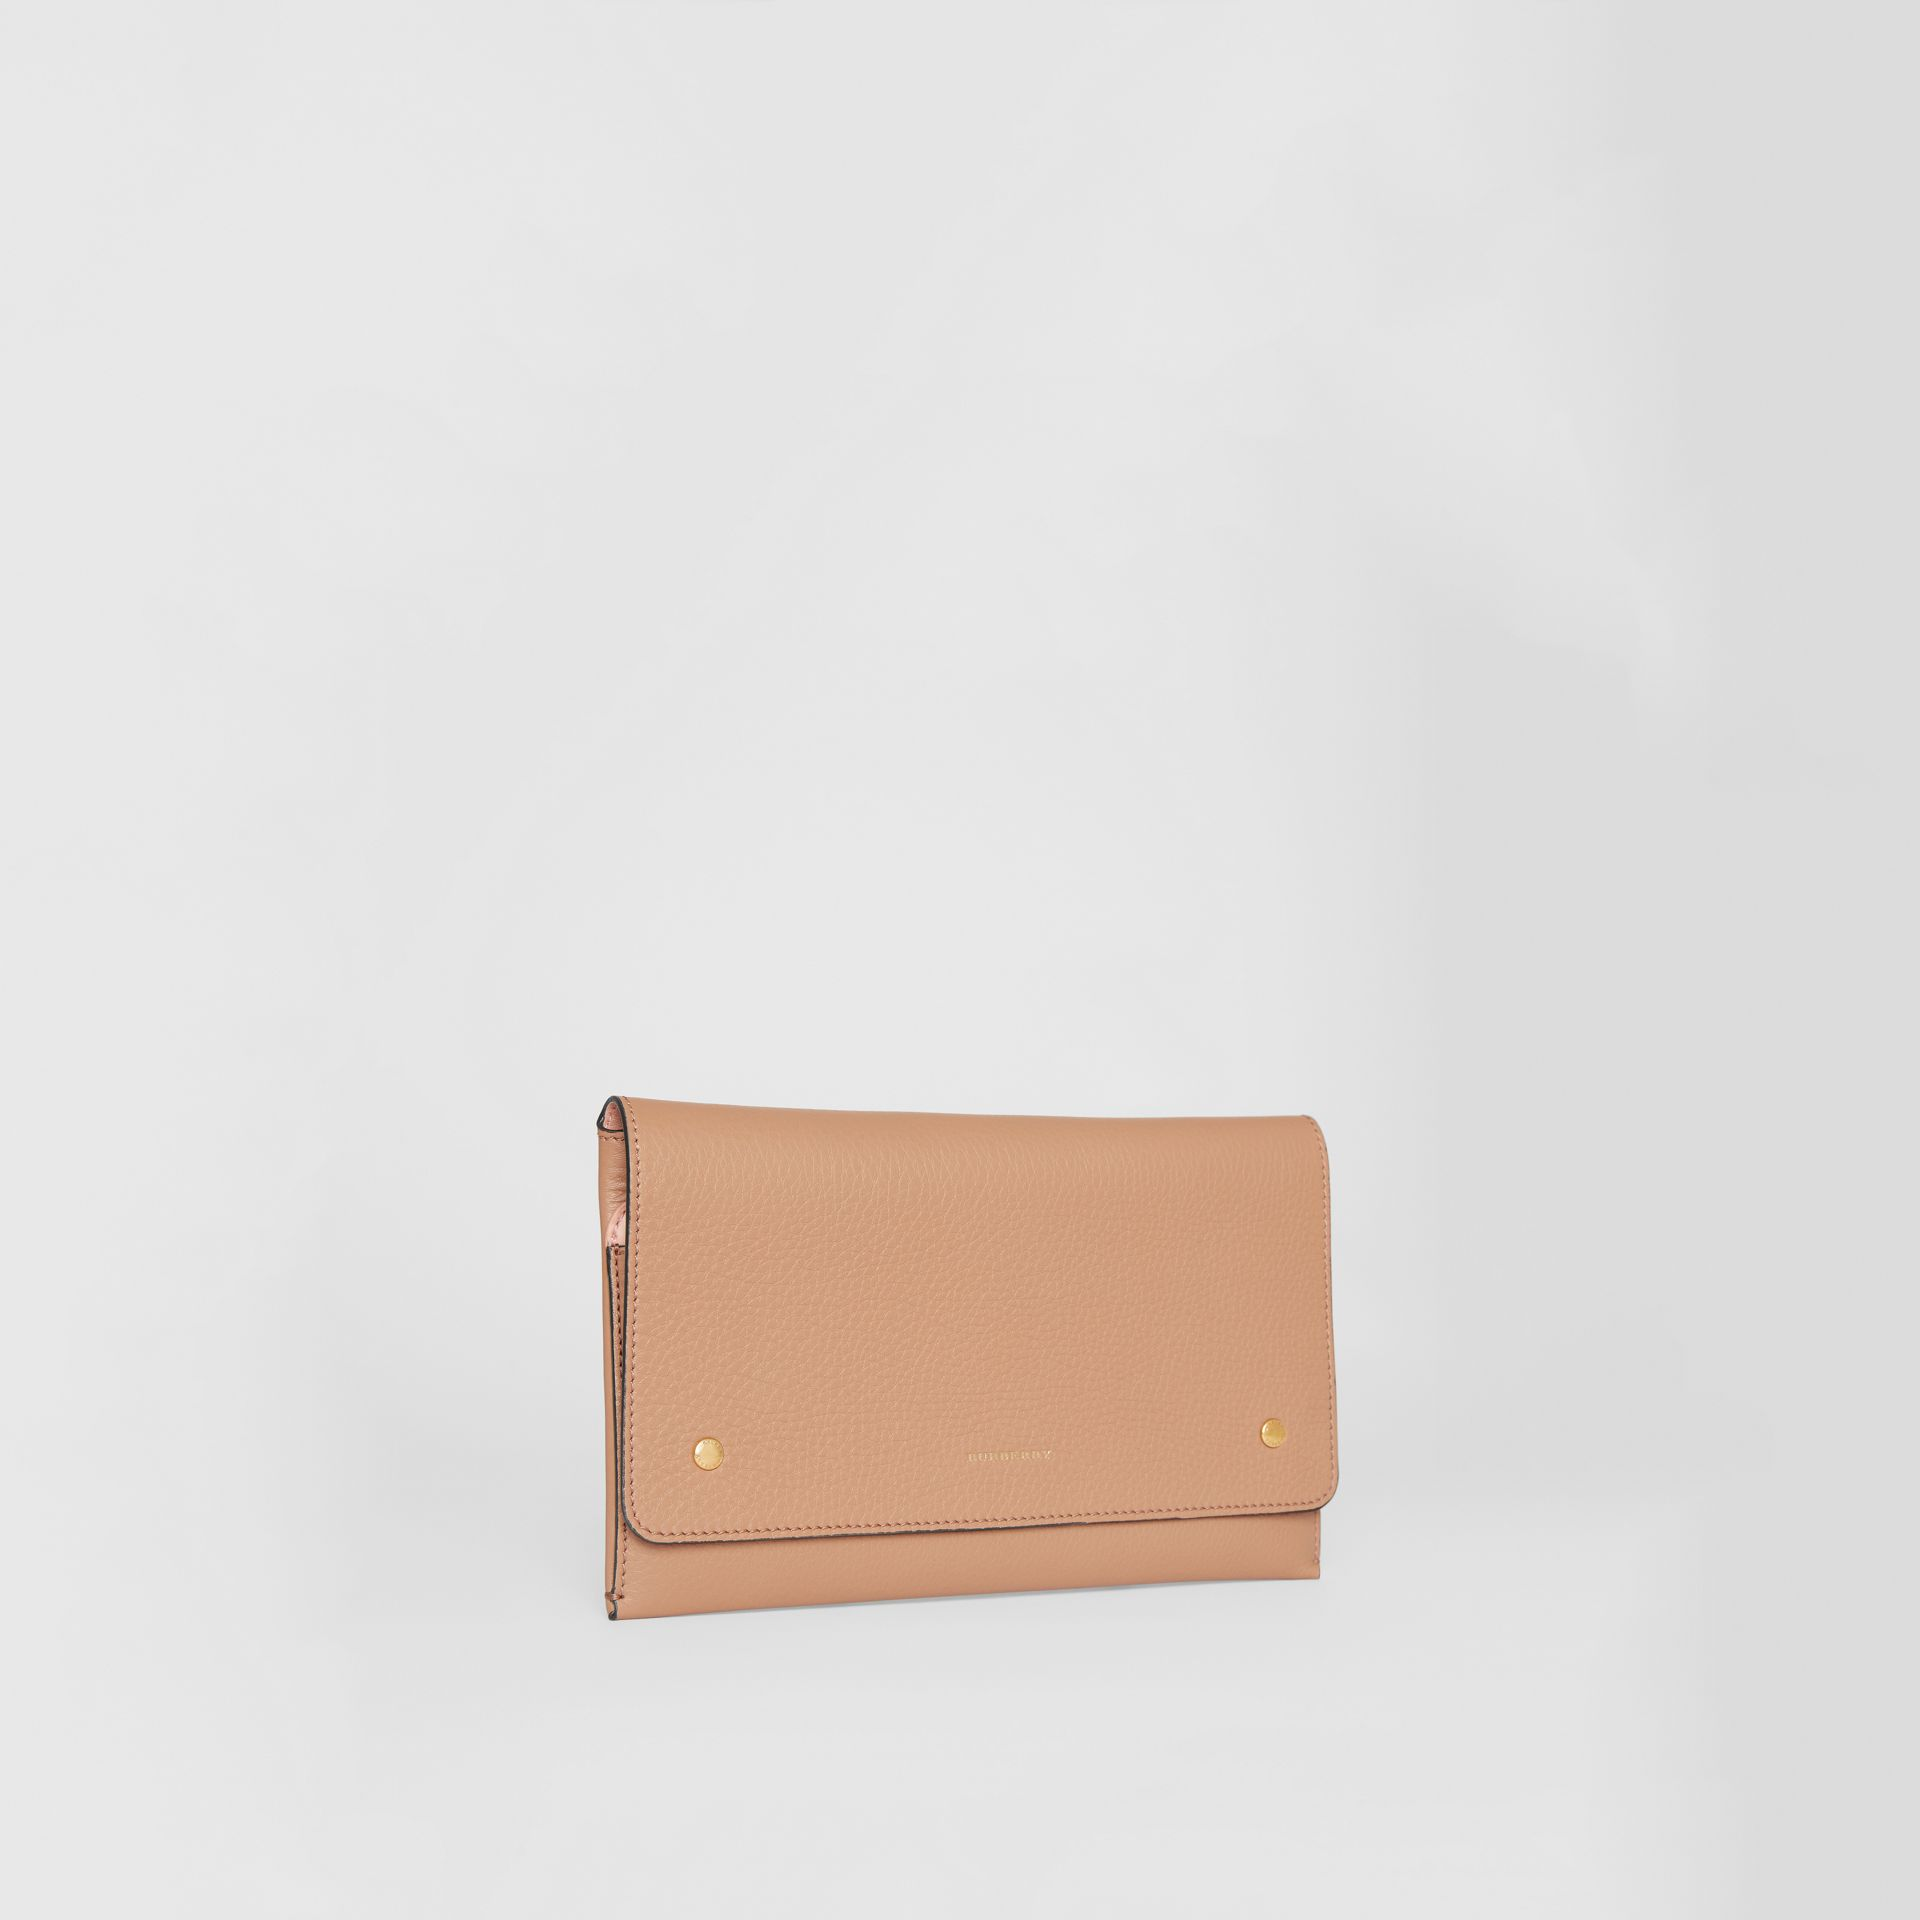 Two-tone Leather Wristlet Clutch in Light Camel - Women | Burberry - gallery image 4